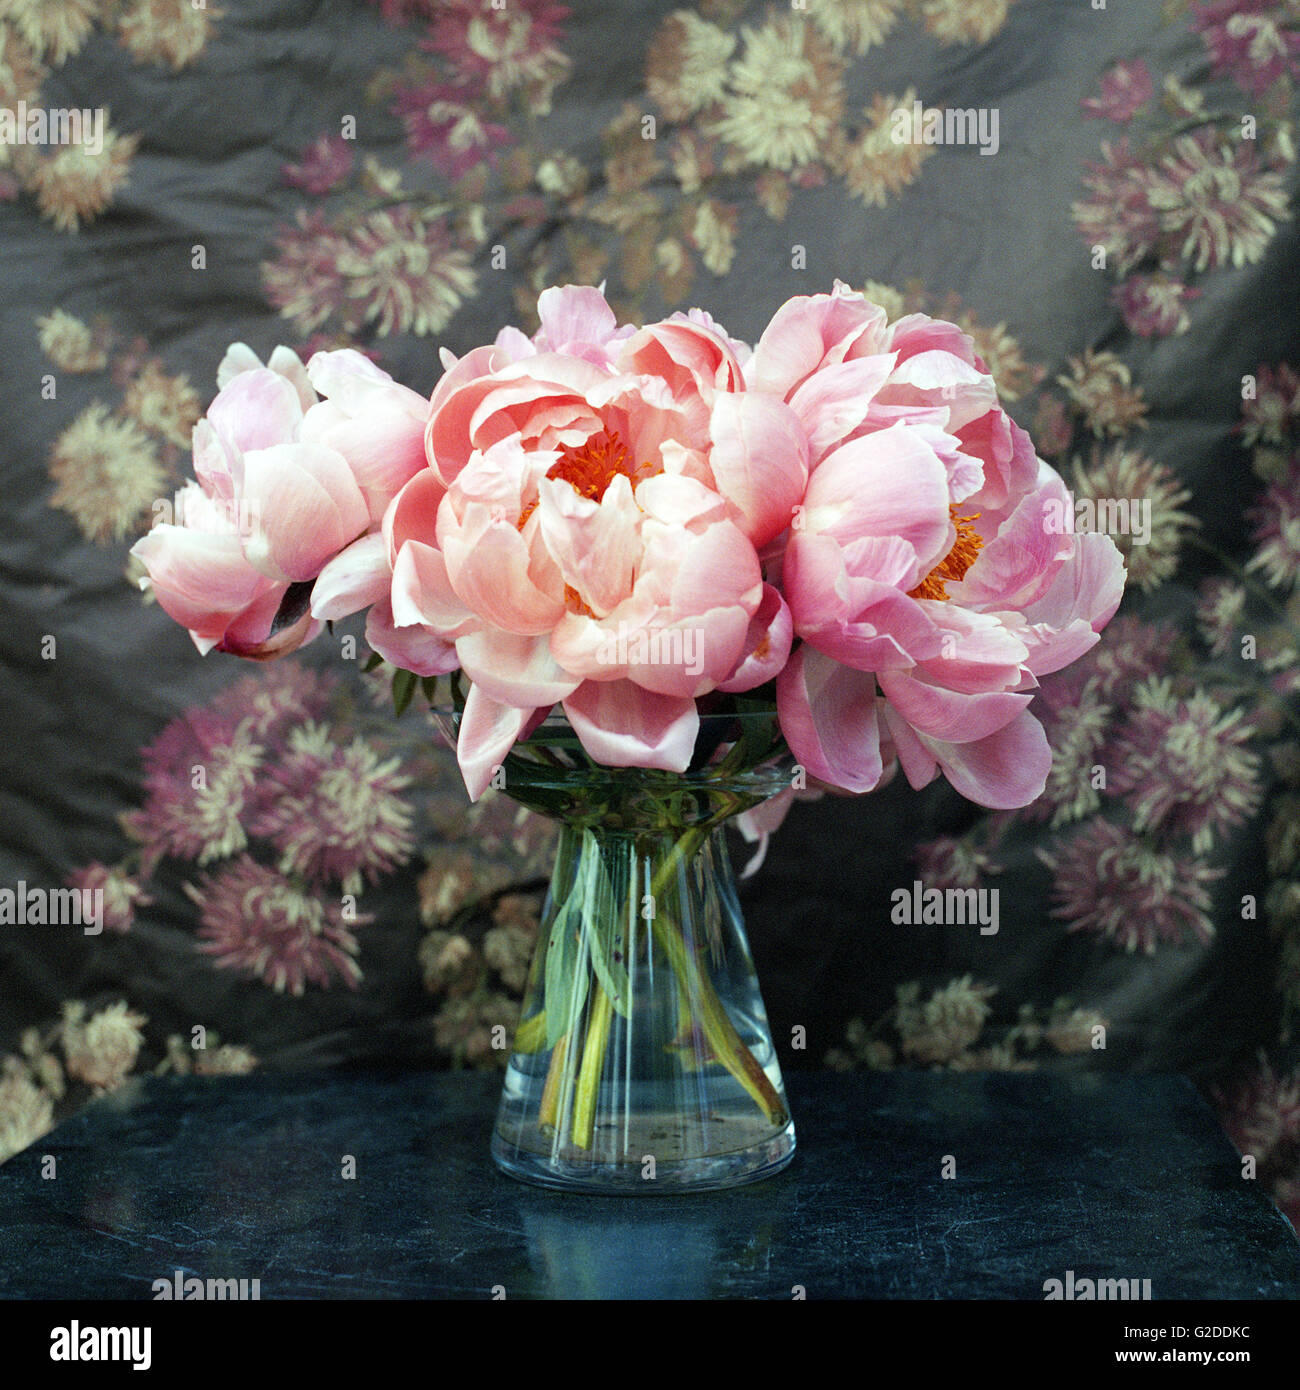 Peonies in Glass Vase - Stock Image